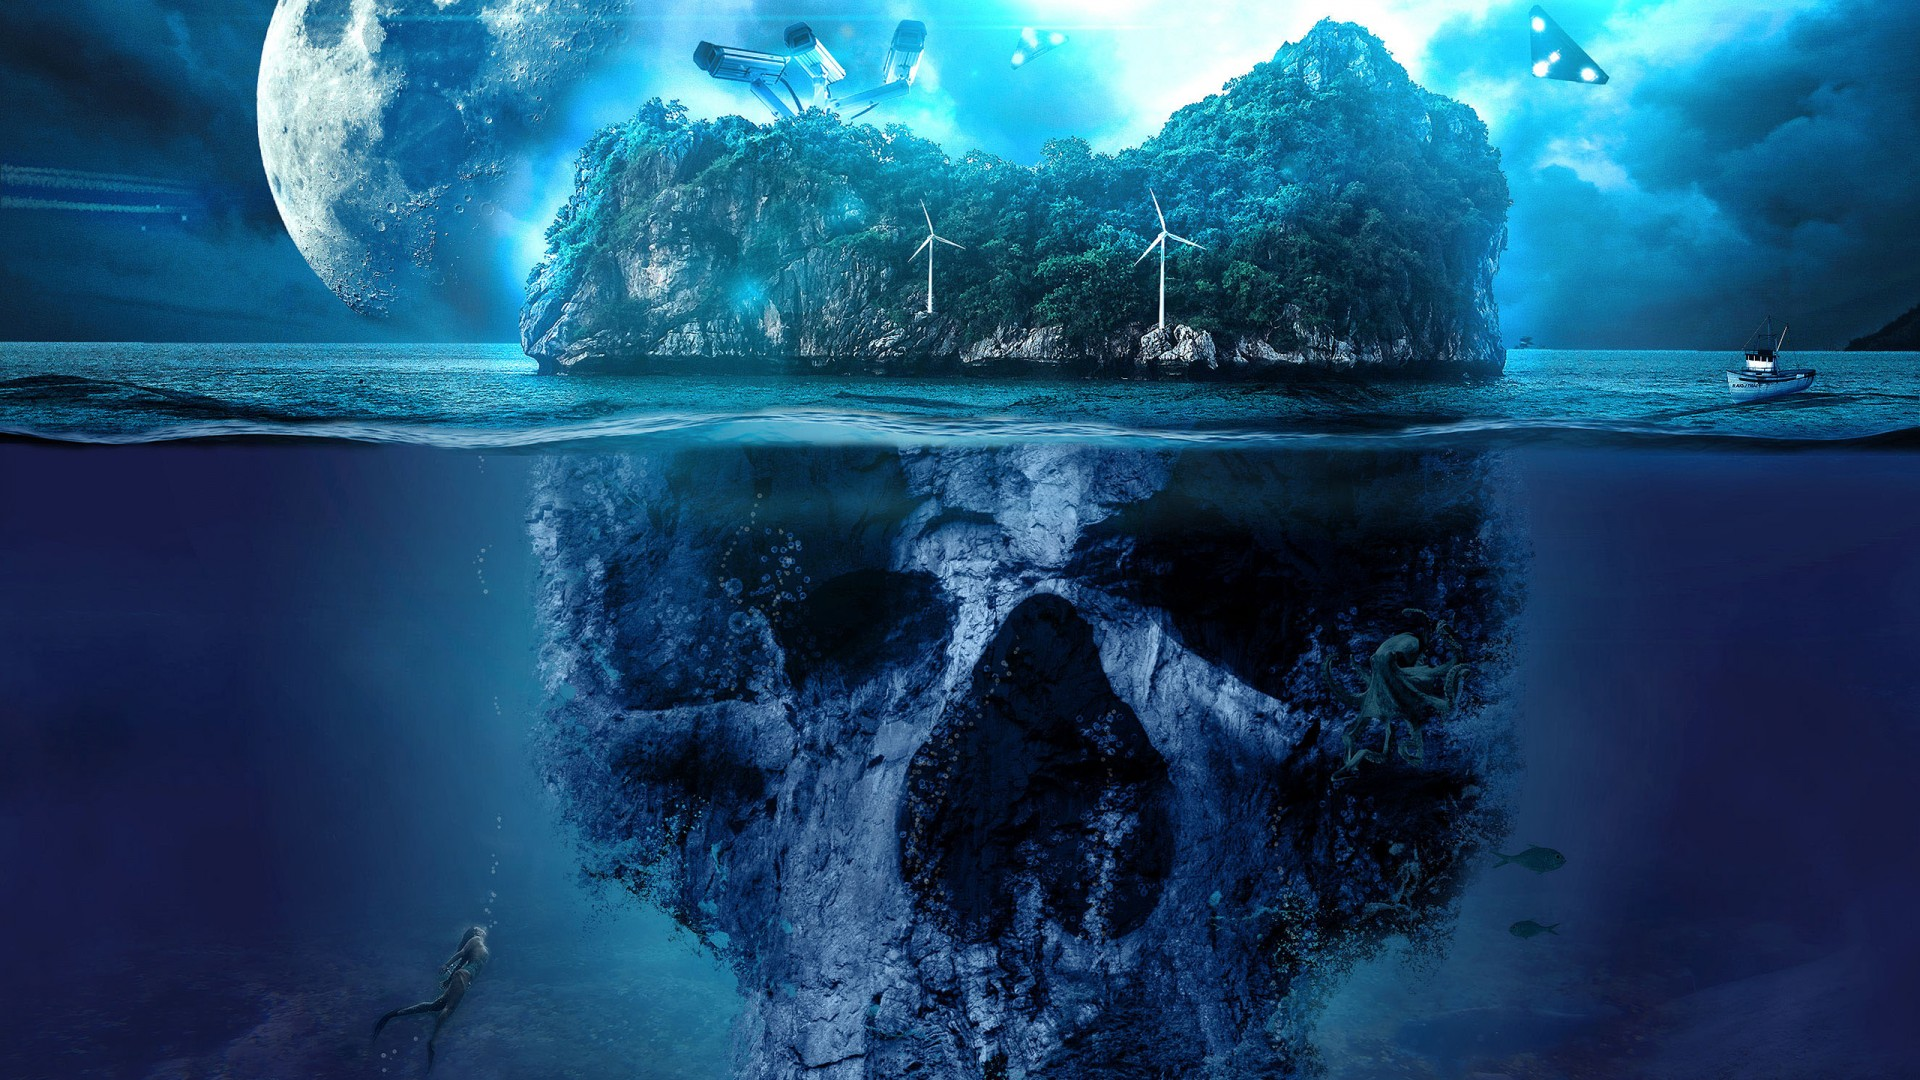 Wallpaper Cute Iphone Mystery Skull Island Wallpapers Hd Wallpapers Id 27263